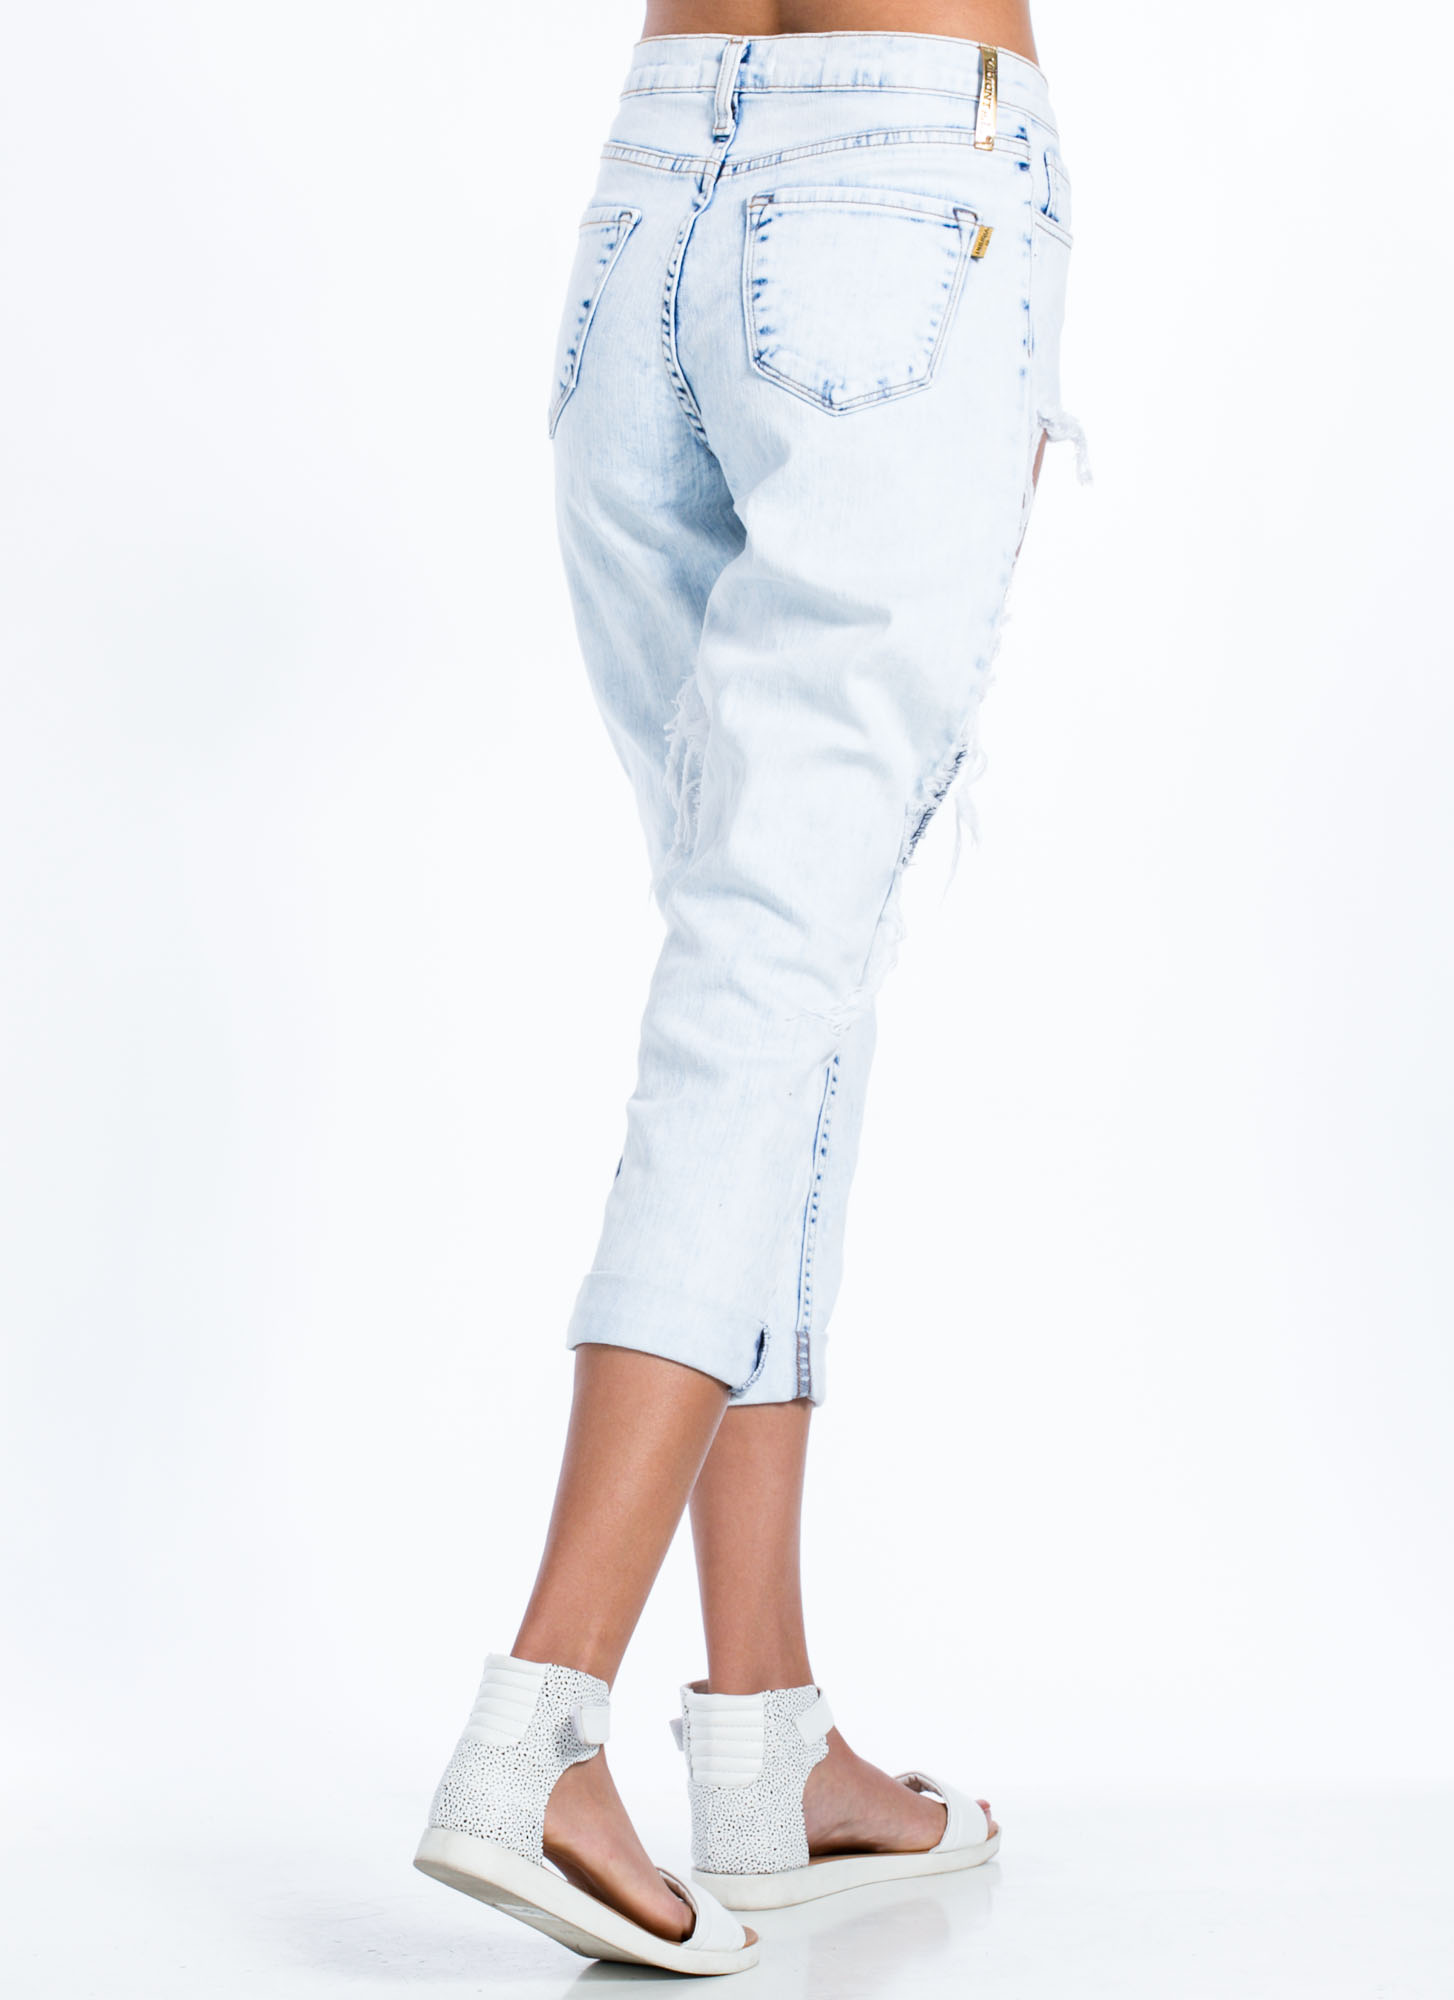 Thigh Cut-Out Boyfriend Jeans LTACID